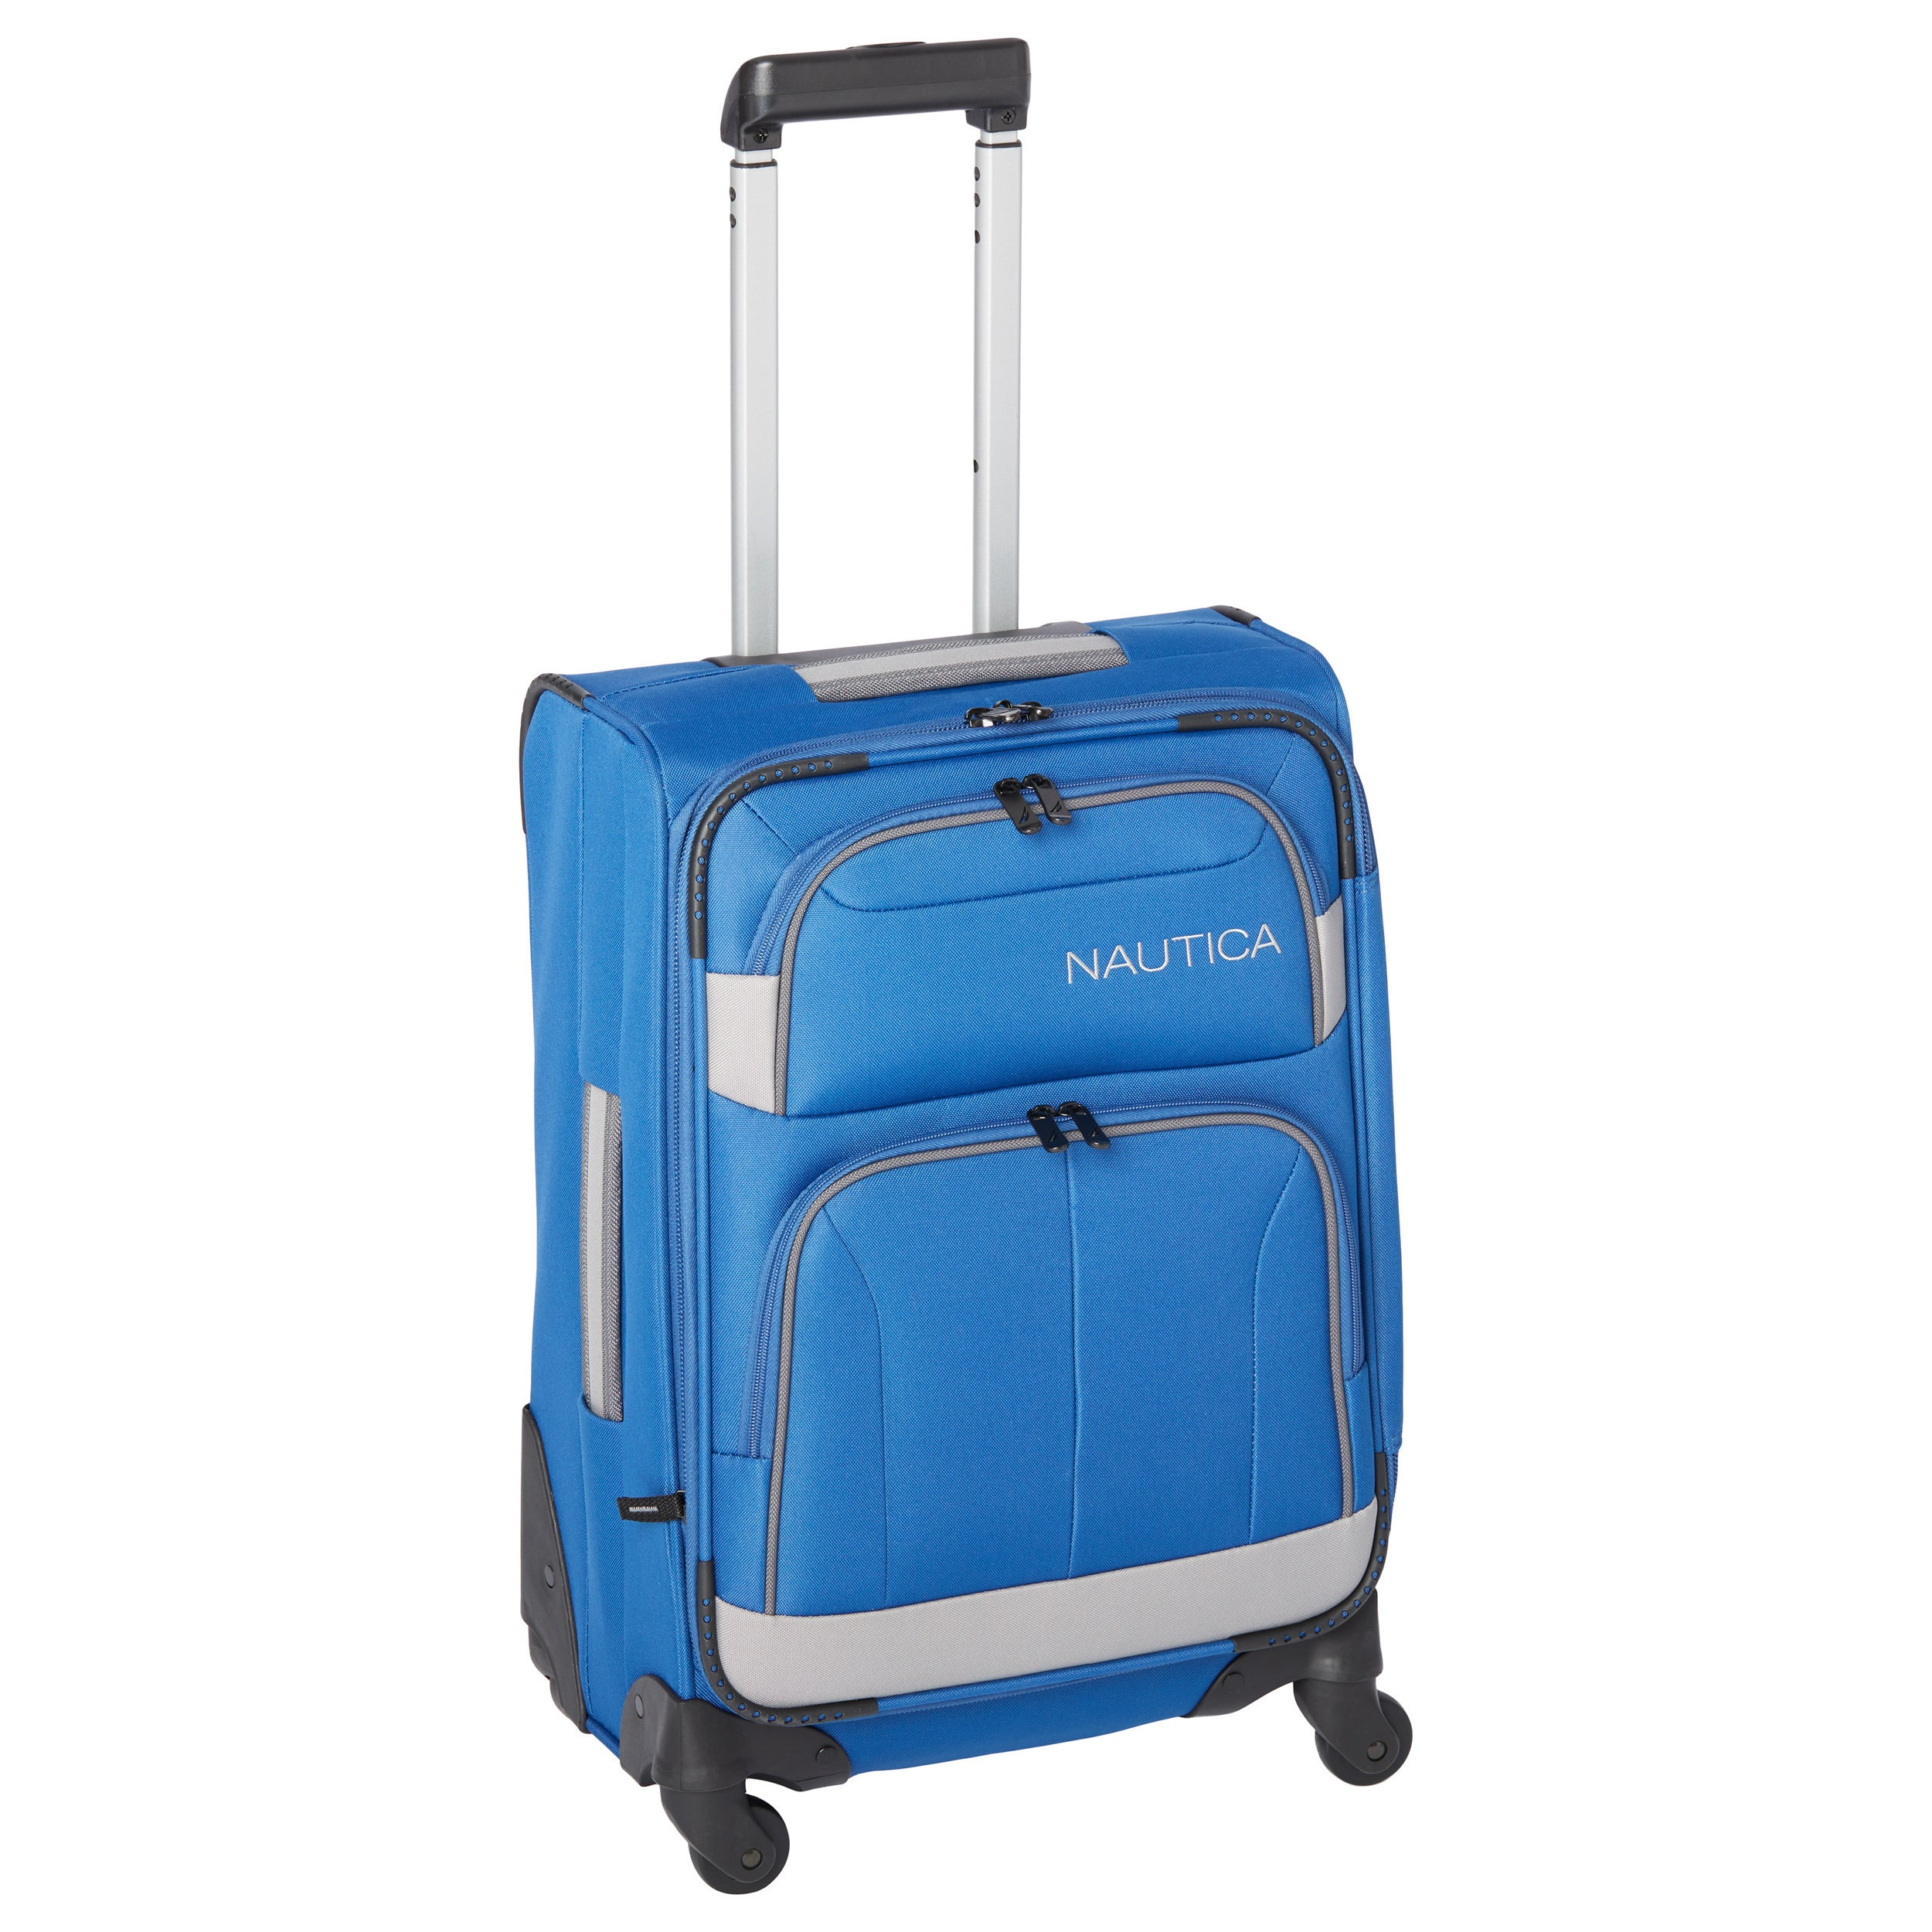 Forum on this topic: How to Ship Luggage, how-to-ship-luggage/